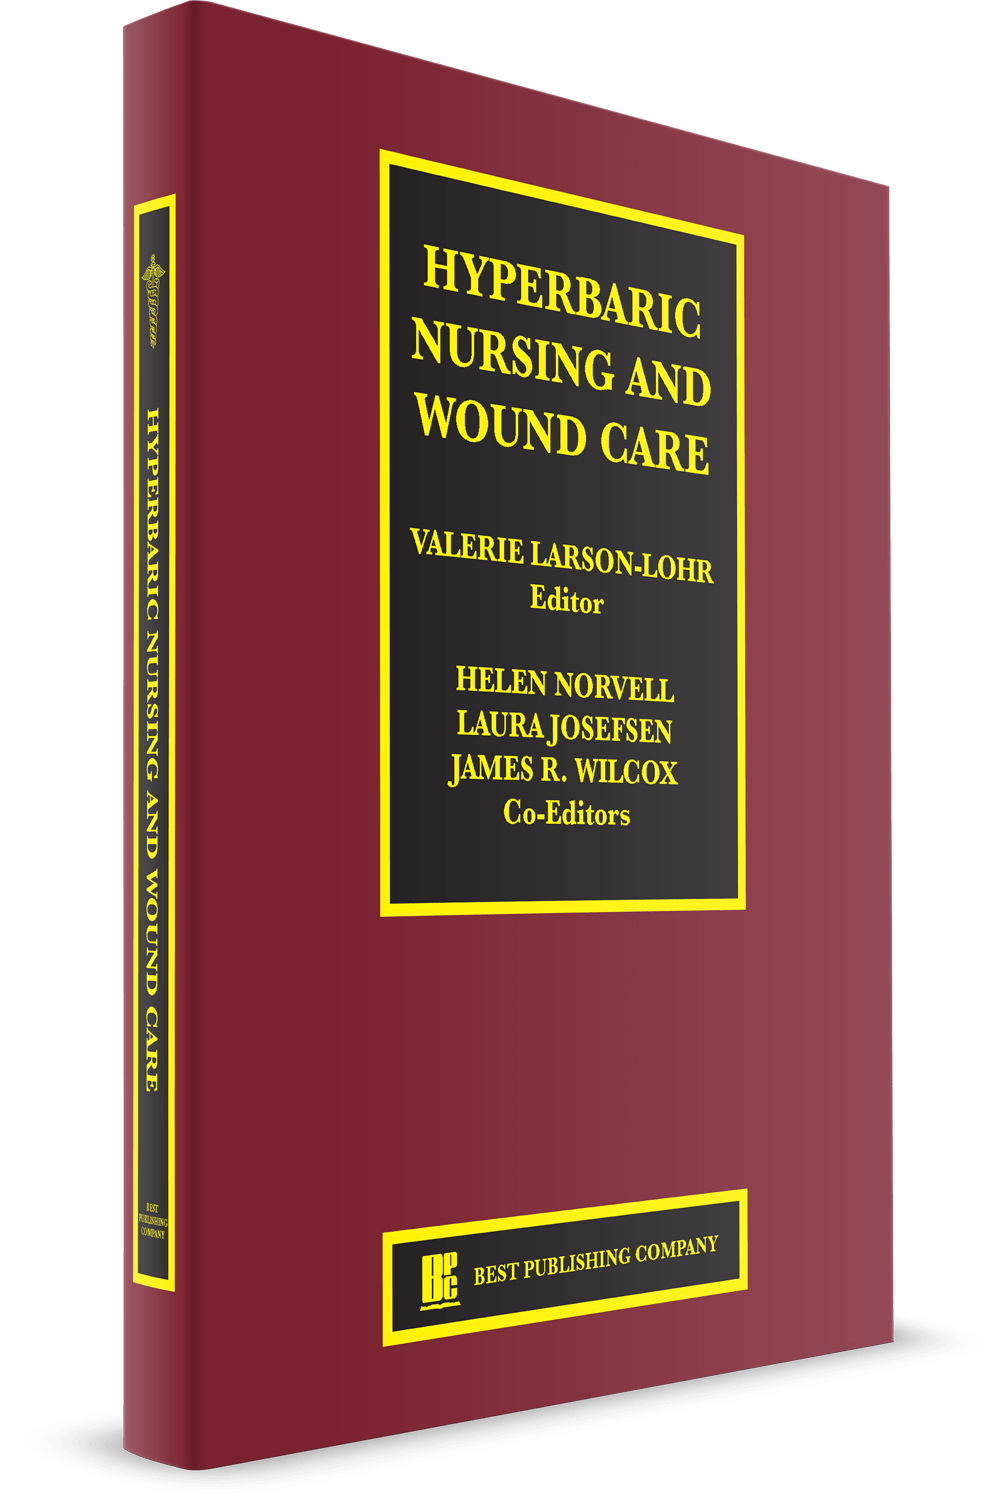 Best publishing company hyperbaric nursing and wound care hyperbaric nursing and wound care xflitez Gallery